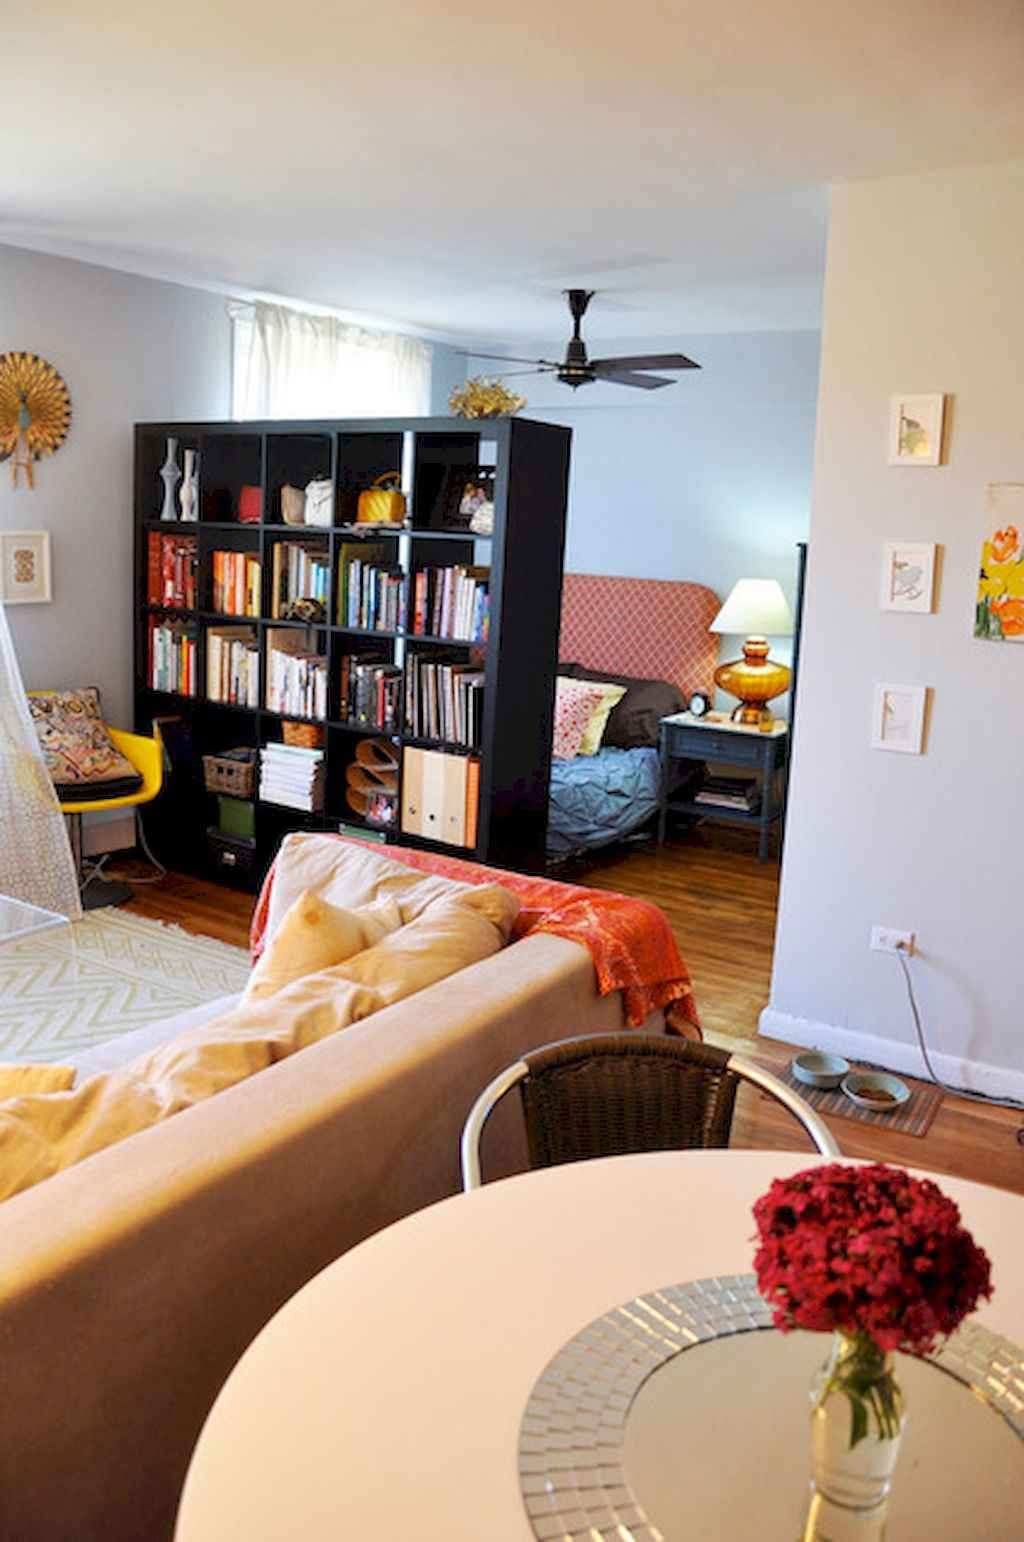 Cool small apartment decorating ideas on a budget (34)